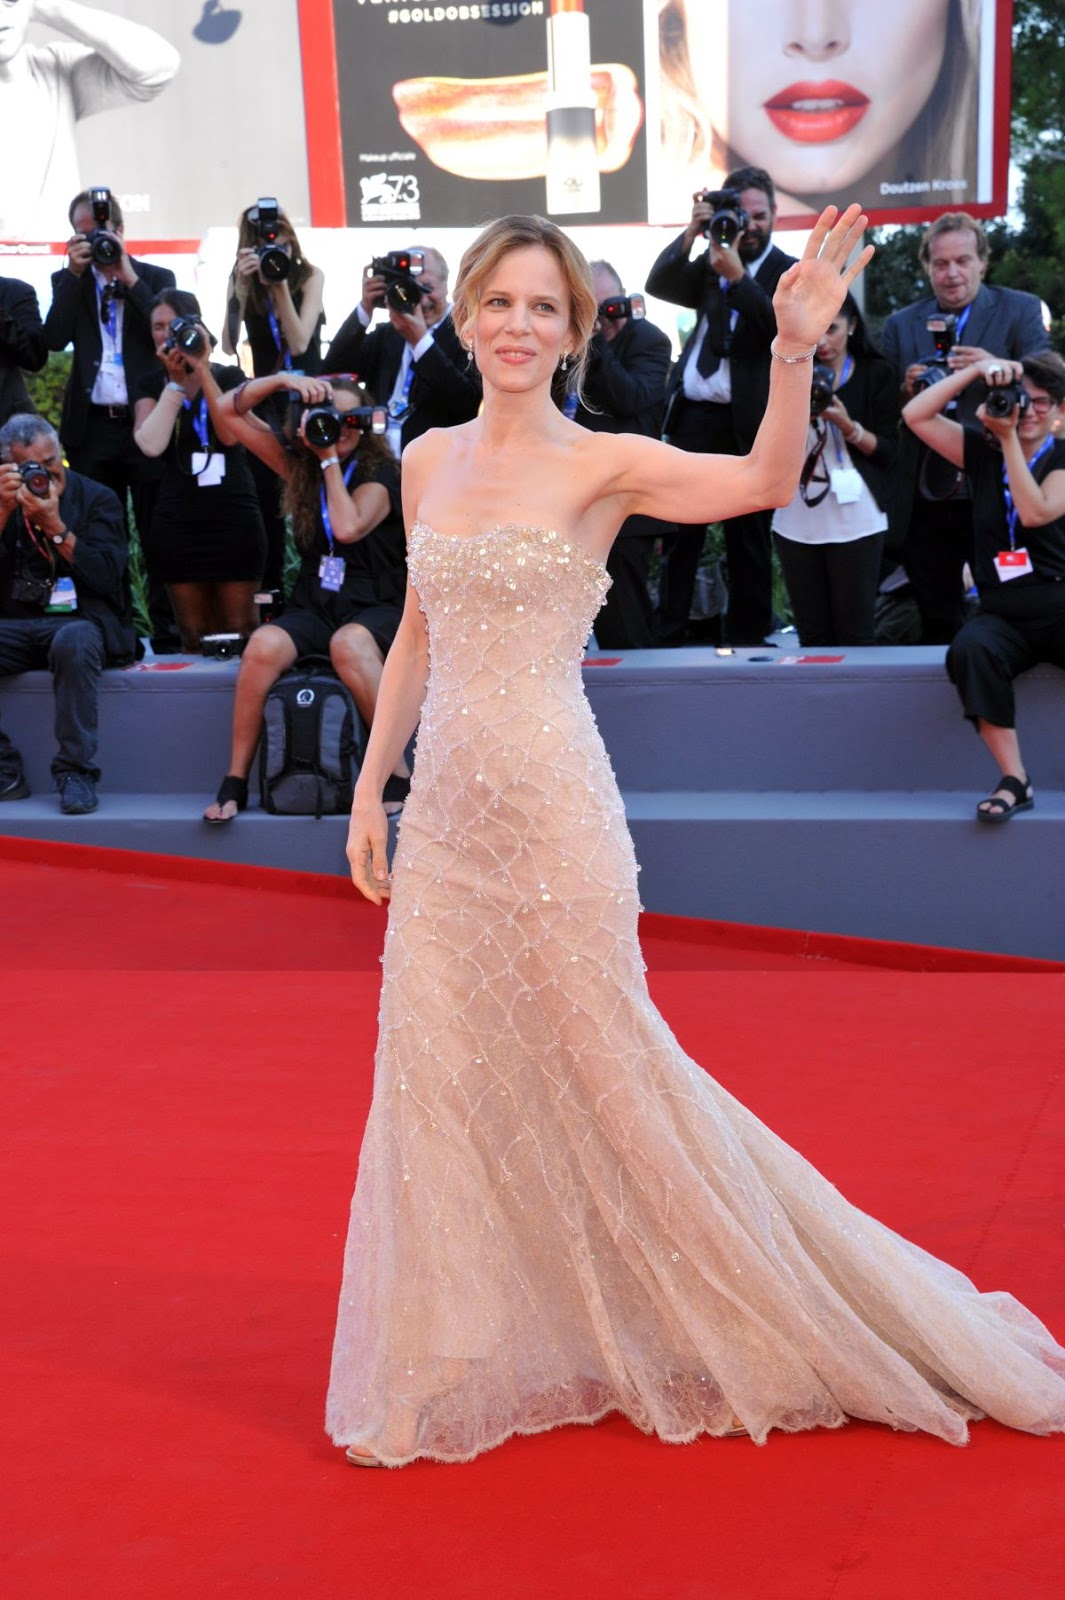 HD Photos of Sonia Bergamasco at La La Land Premiere at 2016 73rd Venice Film Festival